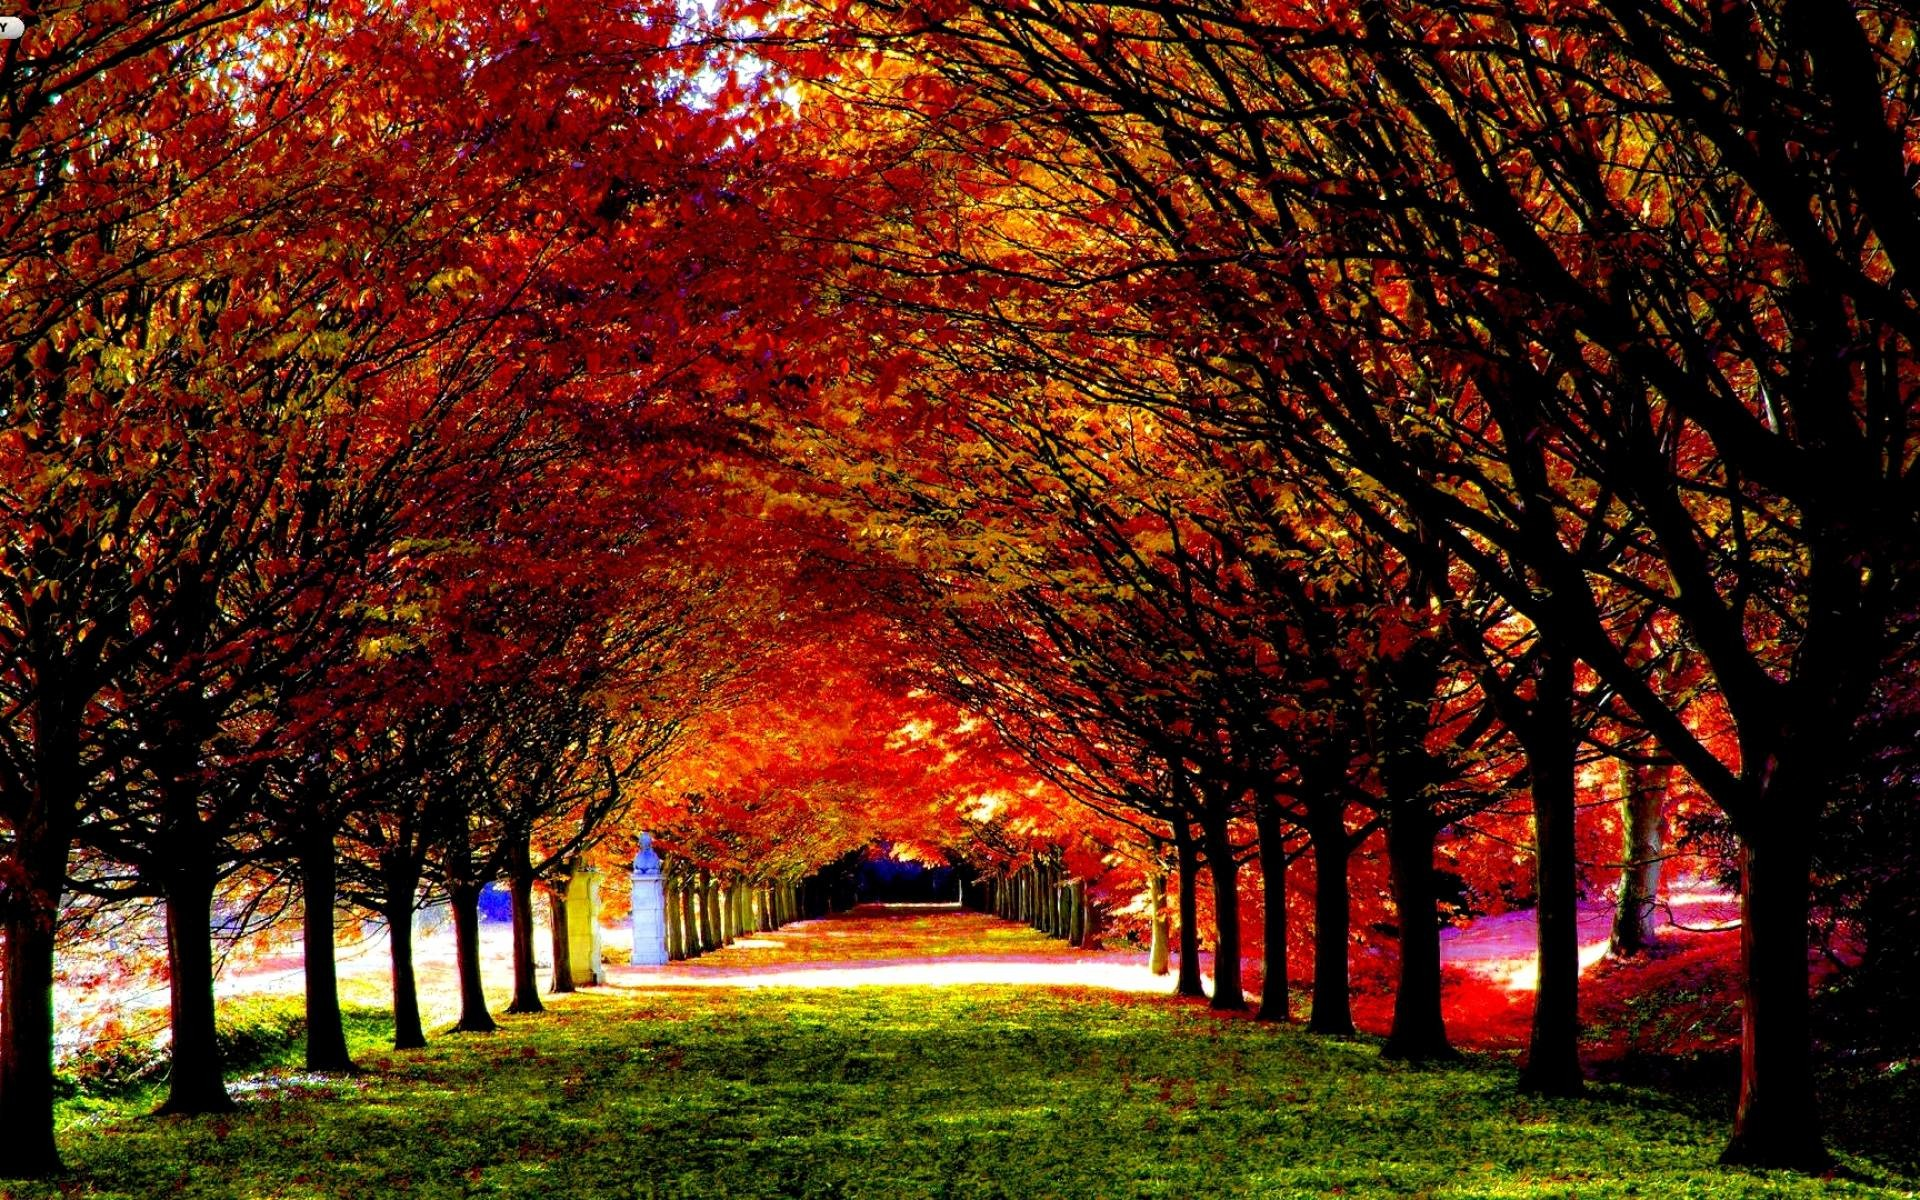 Fall Foliage Wallpaper For Computer Fall Scenery Wallpaper For Computer 48 Images